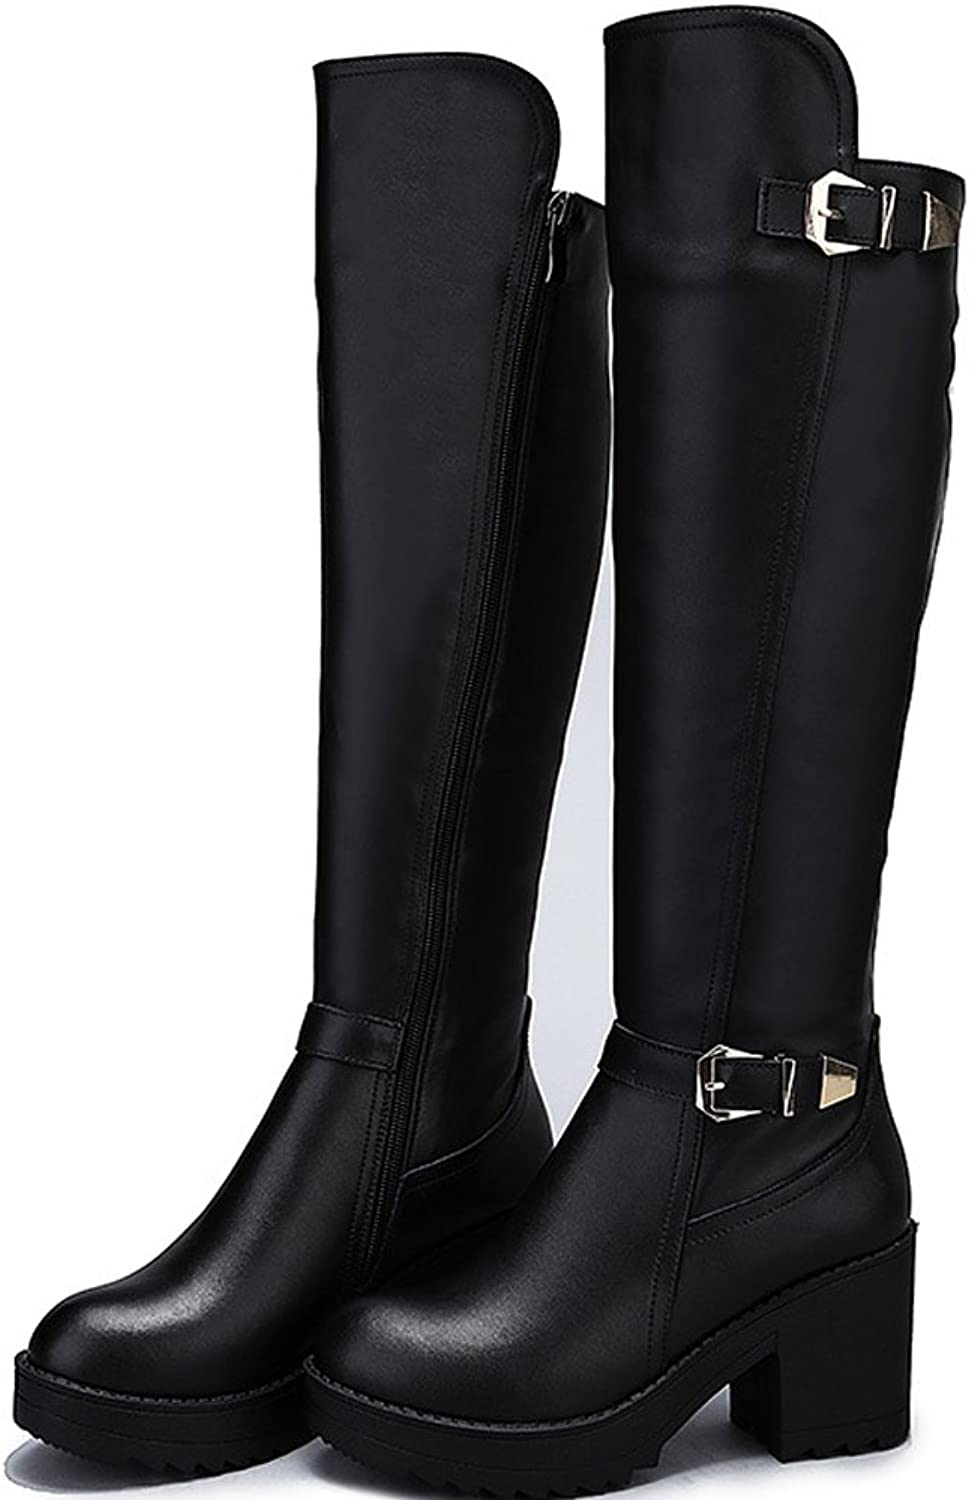 BOFO Women's Cow Leather Martin Boots